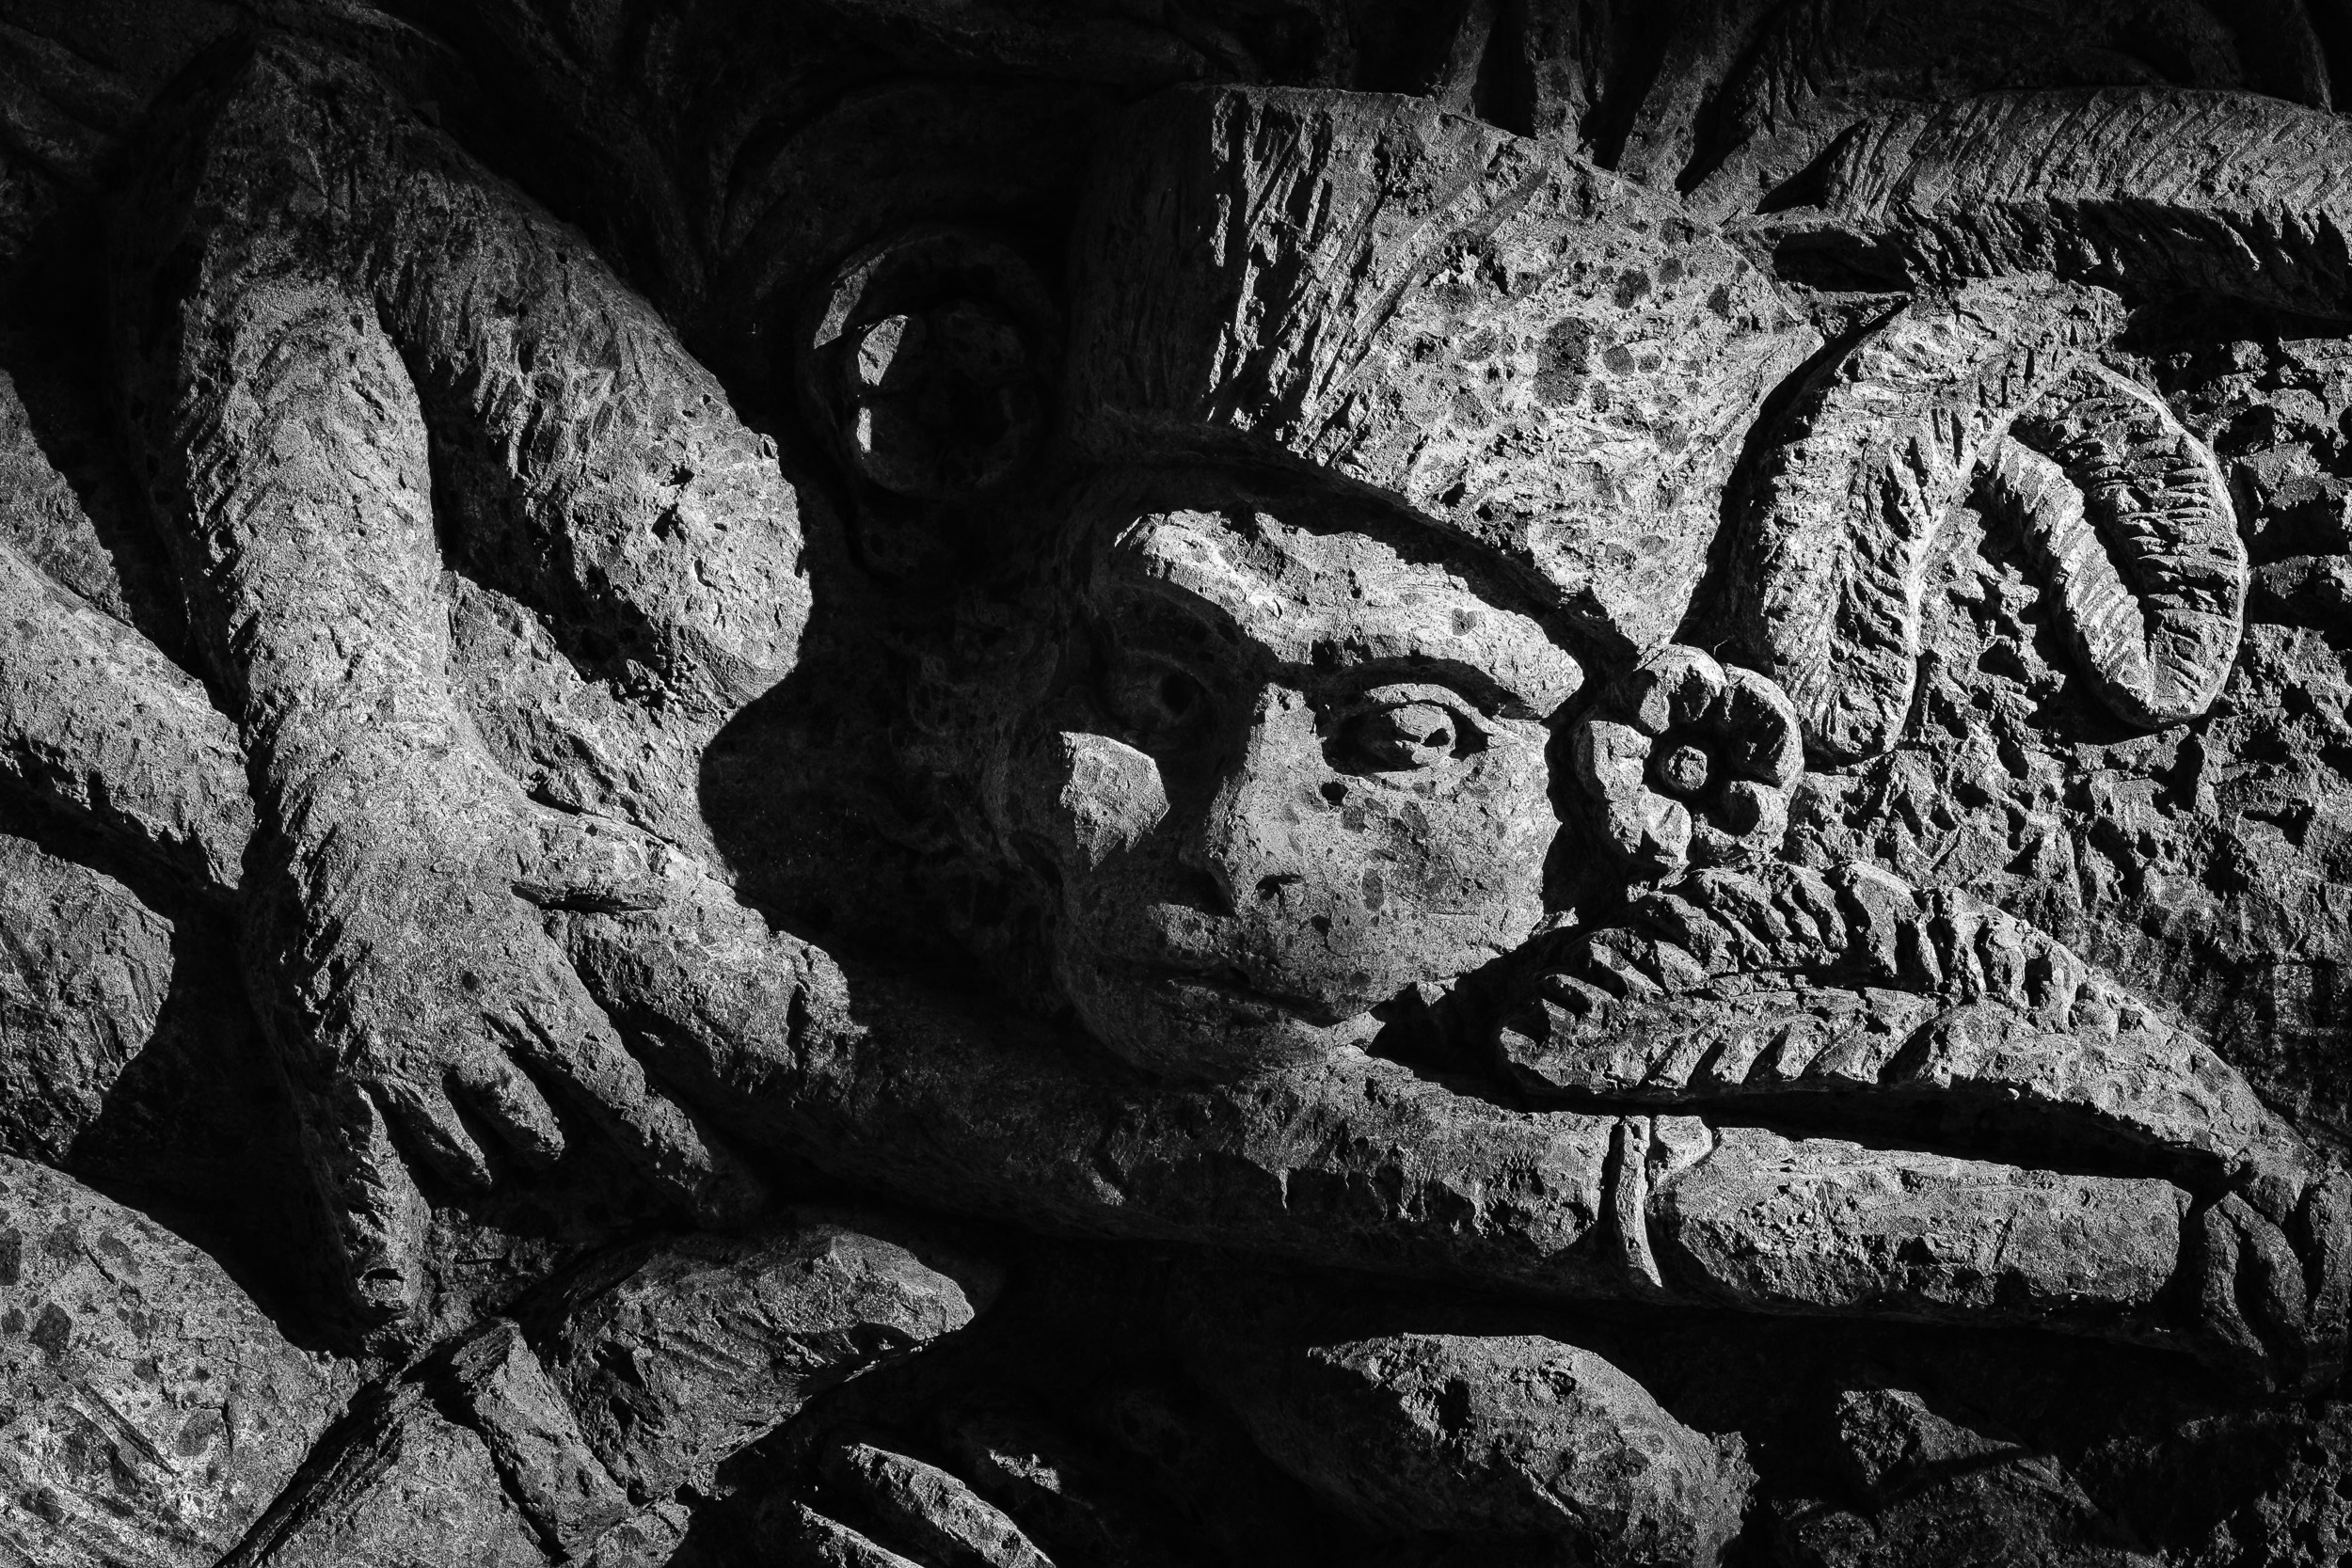 Wall sculpture in Monkey forest in ubud, Bali - Indonesia.  Fujifilm X-E3 + Fujinon XF 80mm f/2.8 R LM WR OIS Macro  1/50sec, f/13, ISO 250